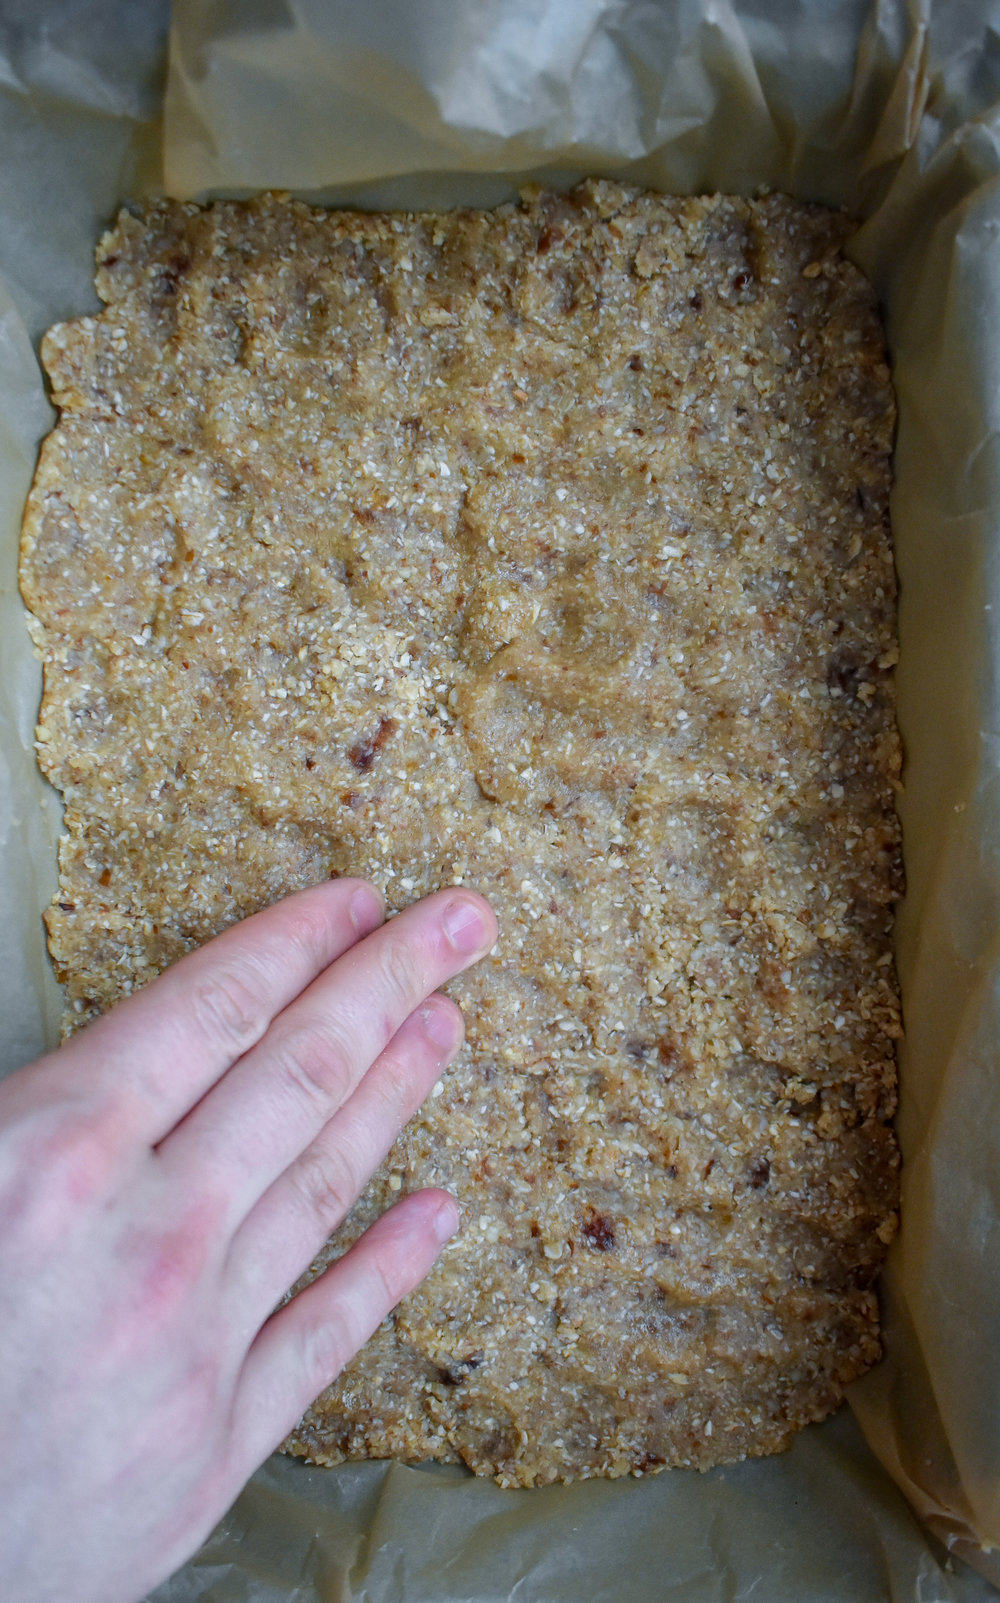 4. Line a 8x14 baking dish with parchment paper. Pour in the crust and press into the dish. Keep an even layer and press into the corners. Place into the oven and bake for 12-14 minutes at 375F.